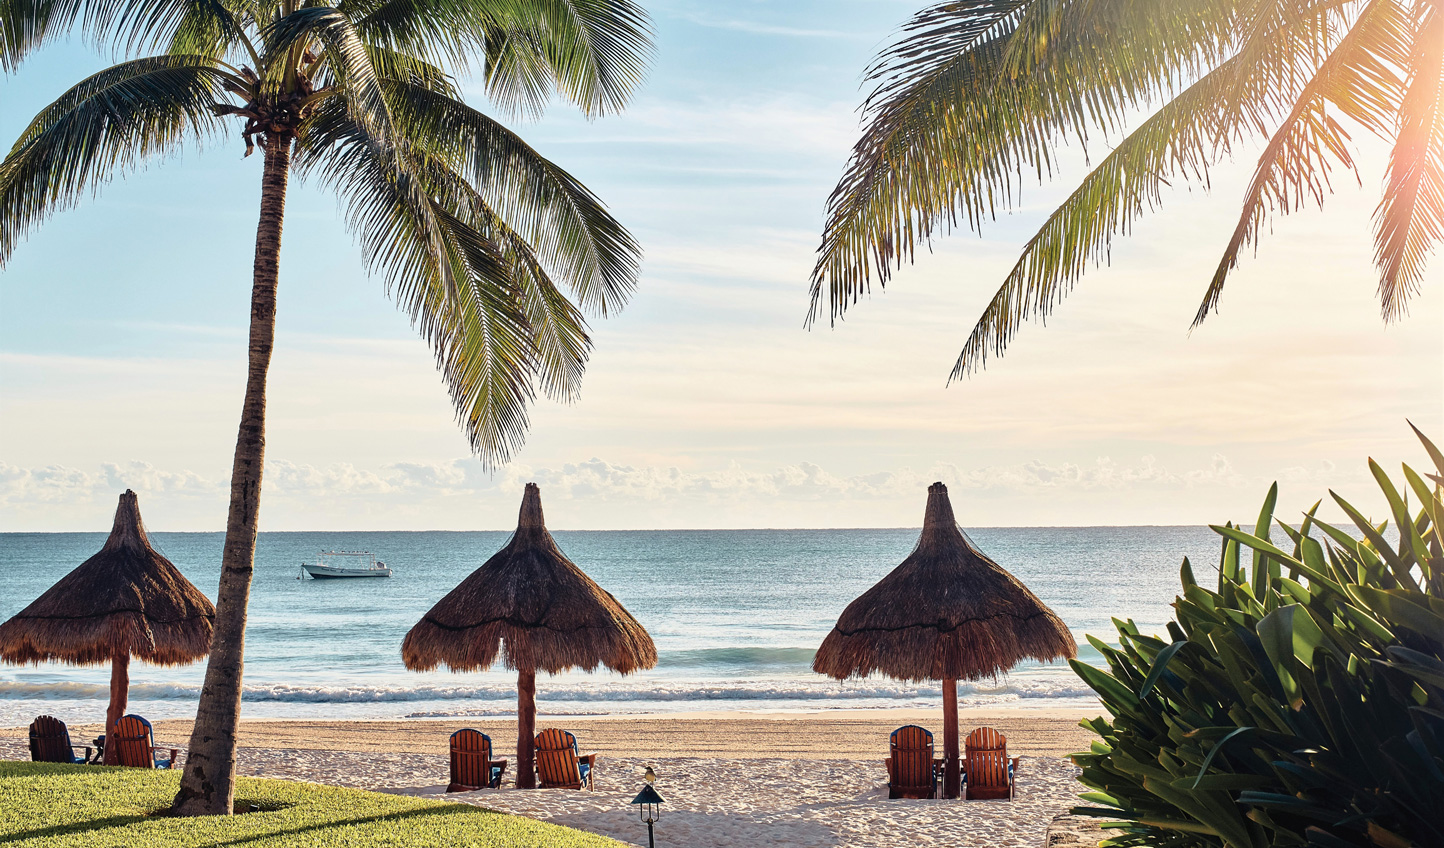 Sink your toes into the soft sands of Belmond Maroma